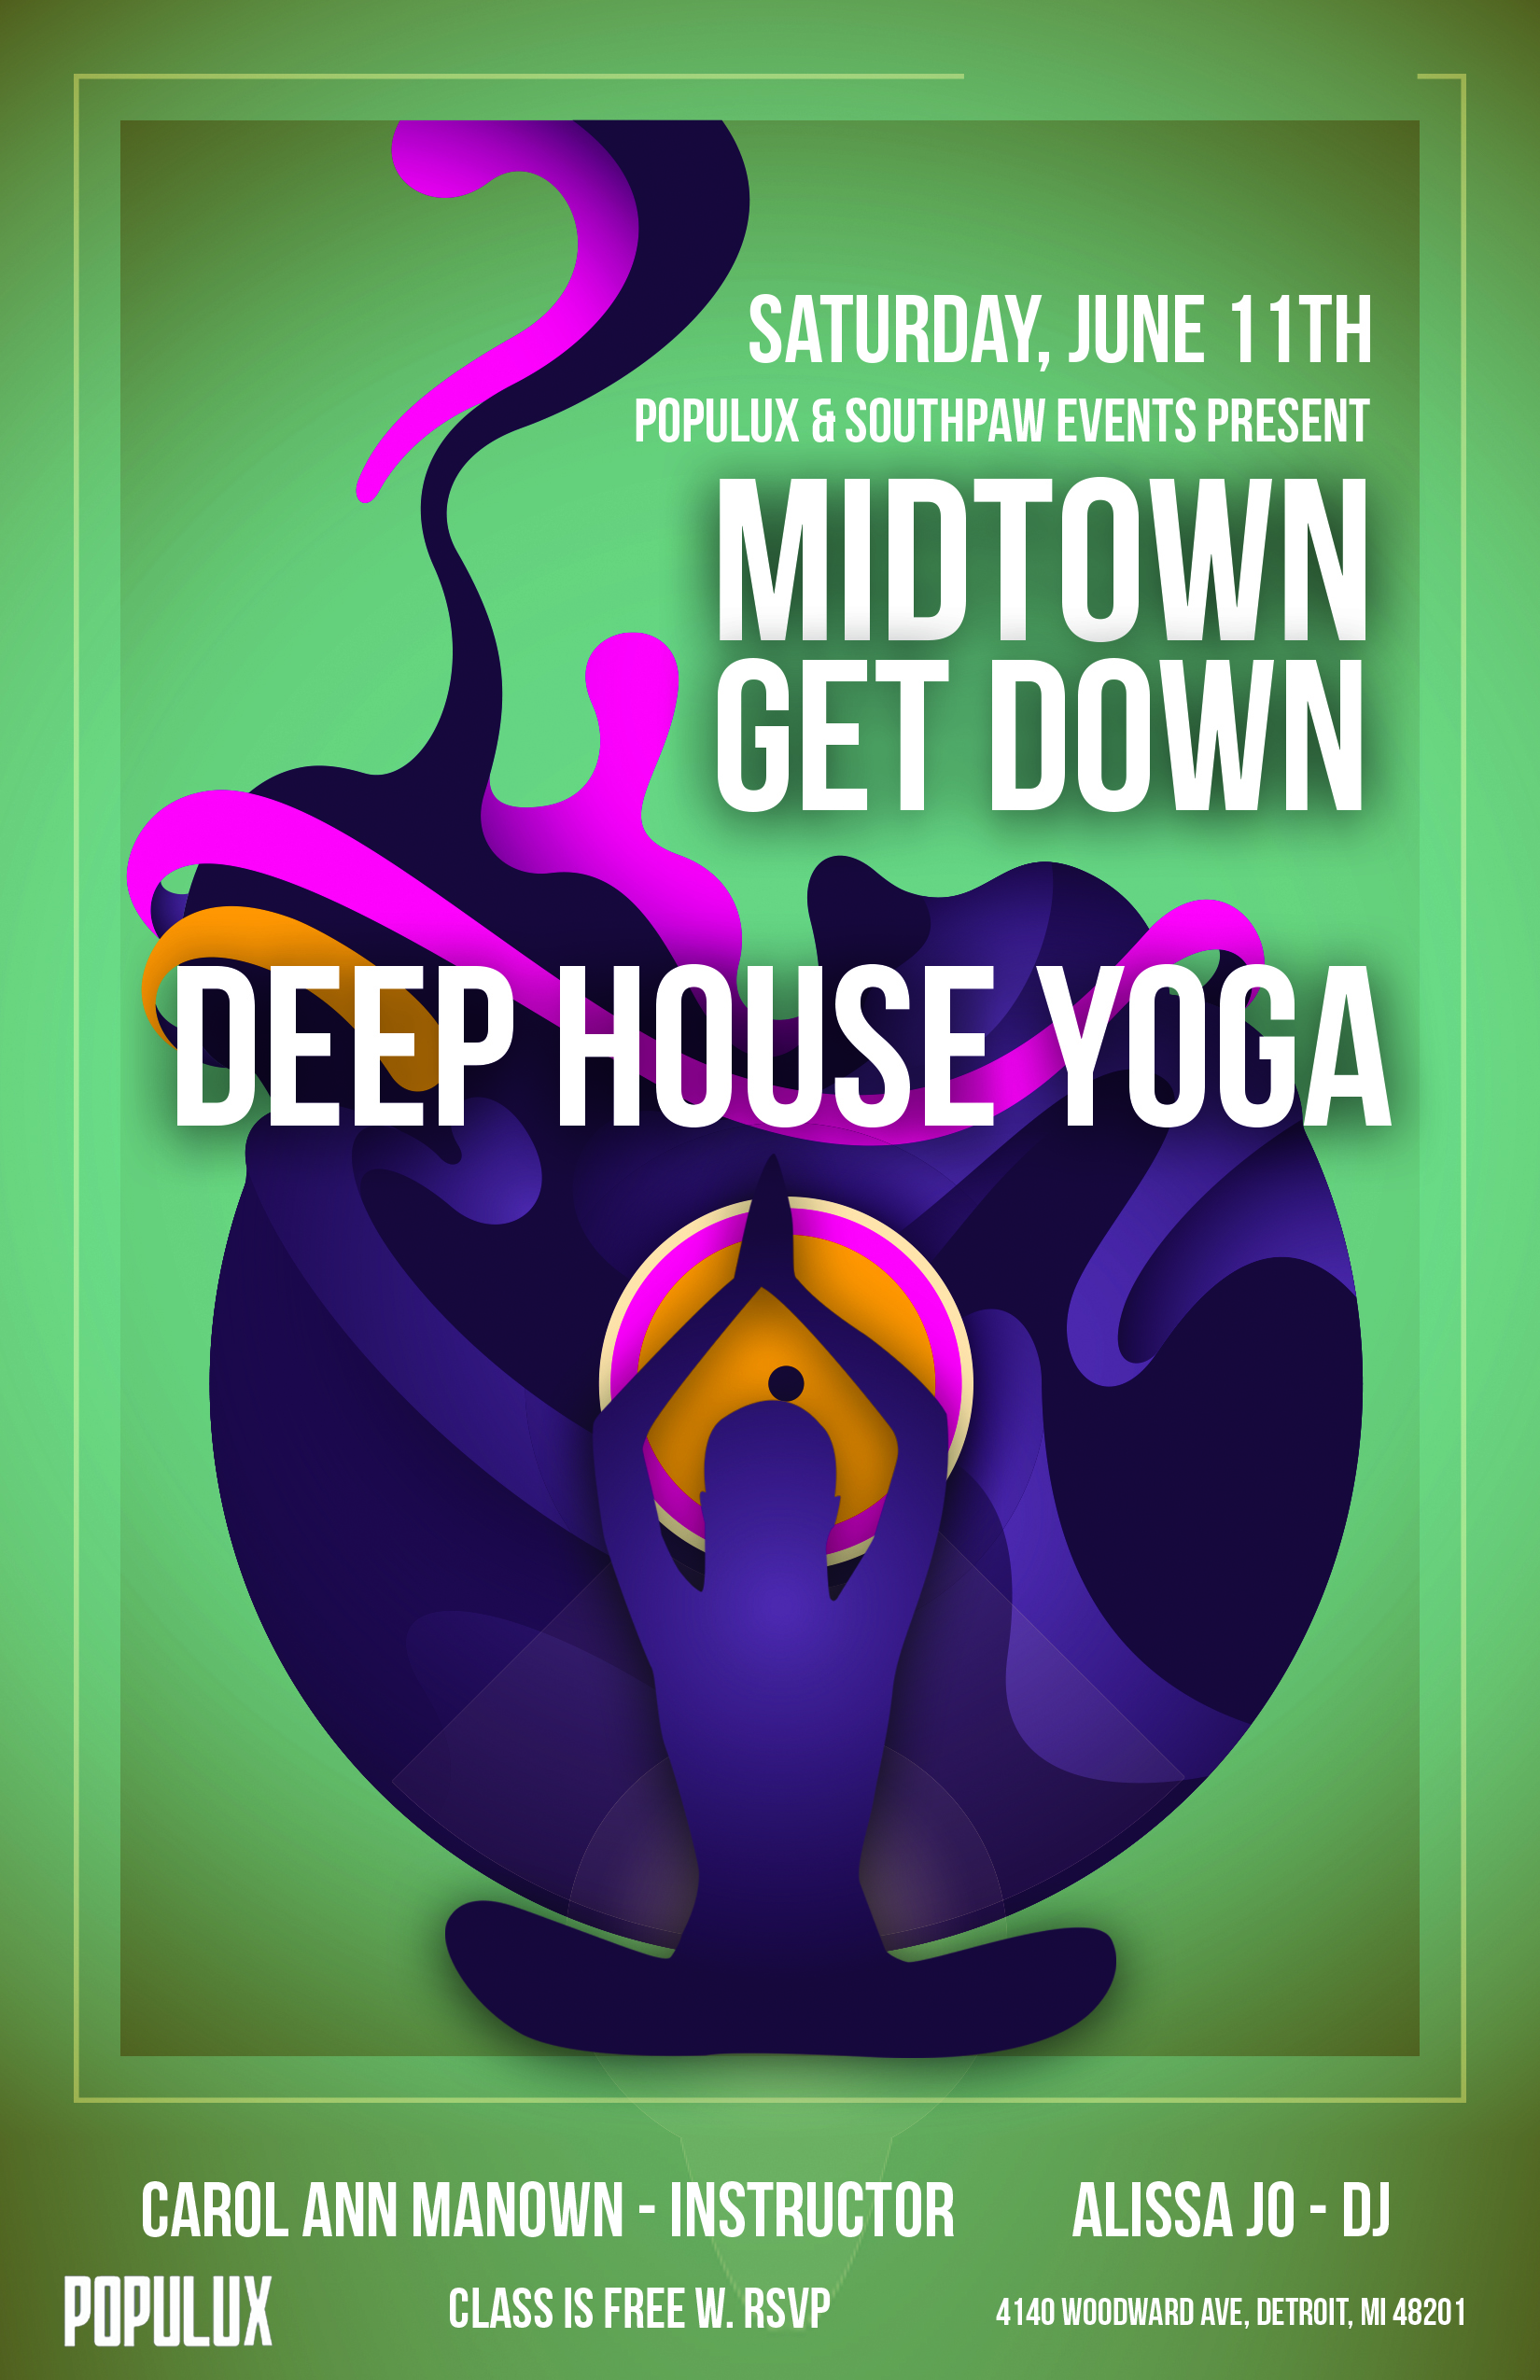 MIDTOWN GET DOWN2.jpg